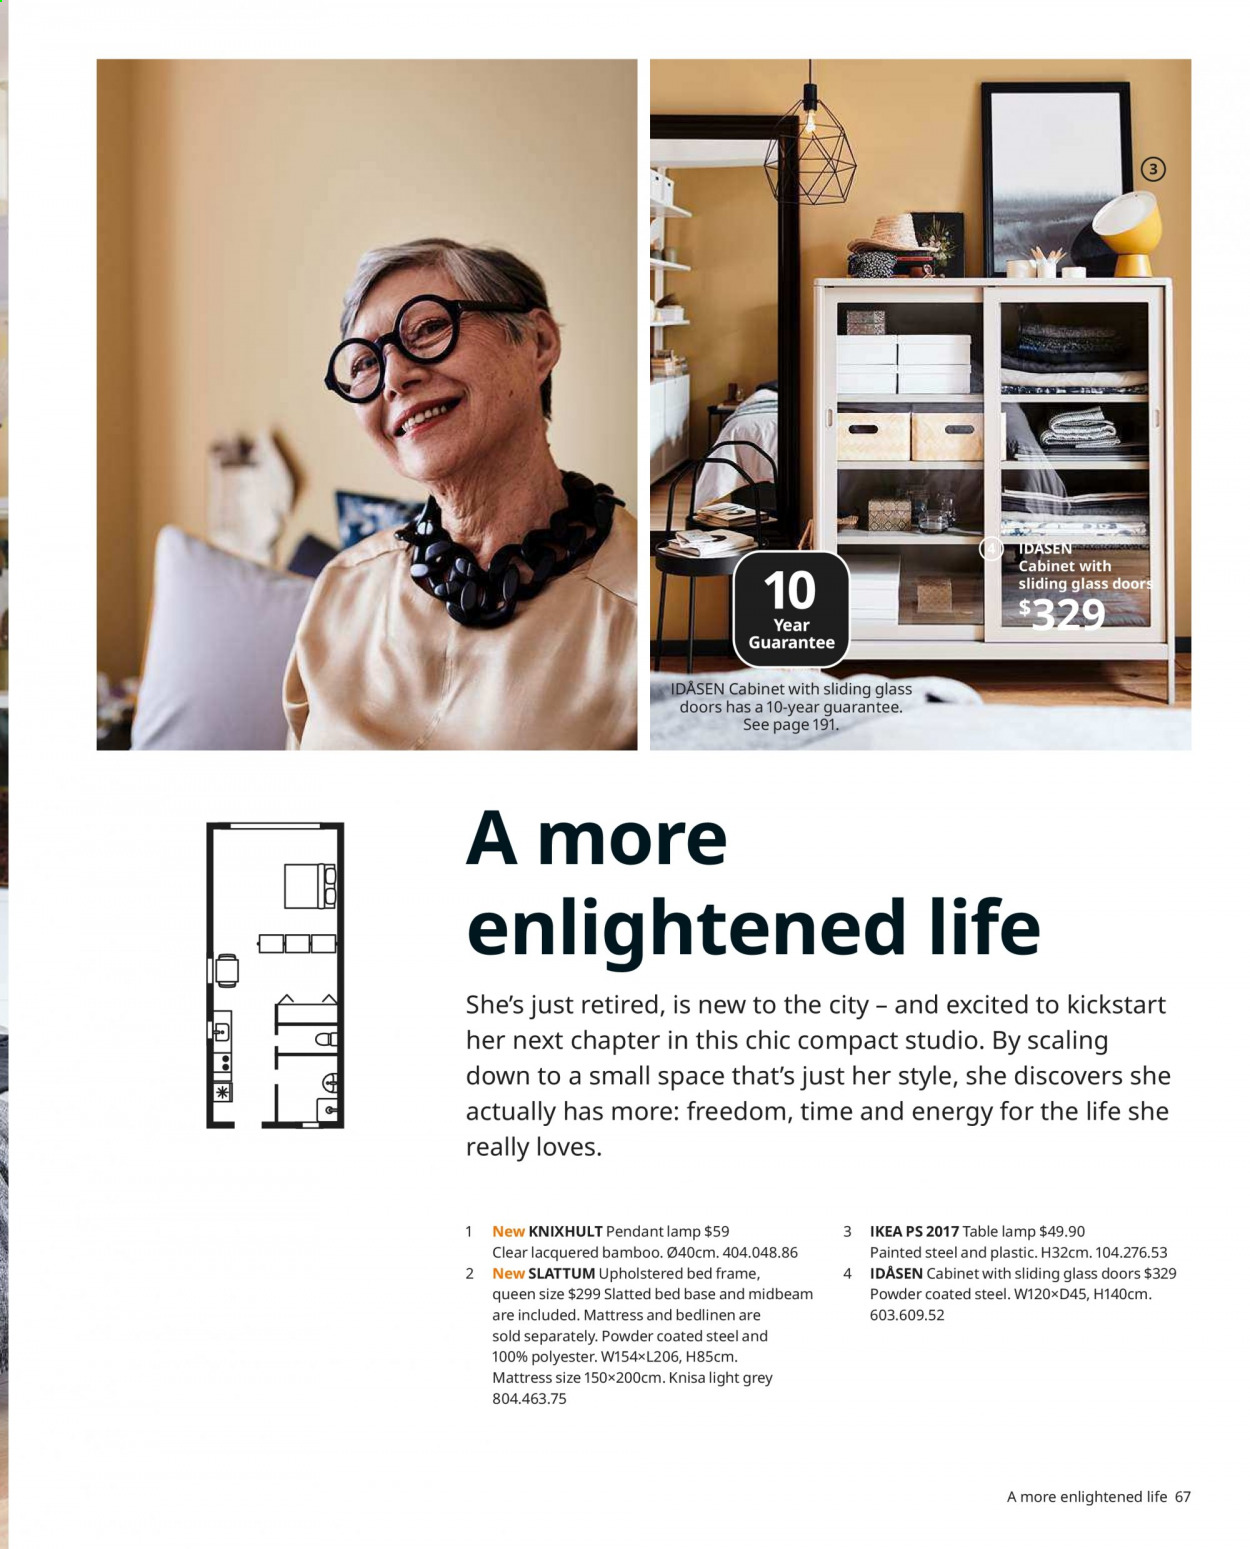 IKEA offer  - Sales products - bed, bed frame, cabinet, door, glass, lamp, mattress, table lamp, upholstered bed, powder, pendant, pendant lamp. Page 67.